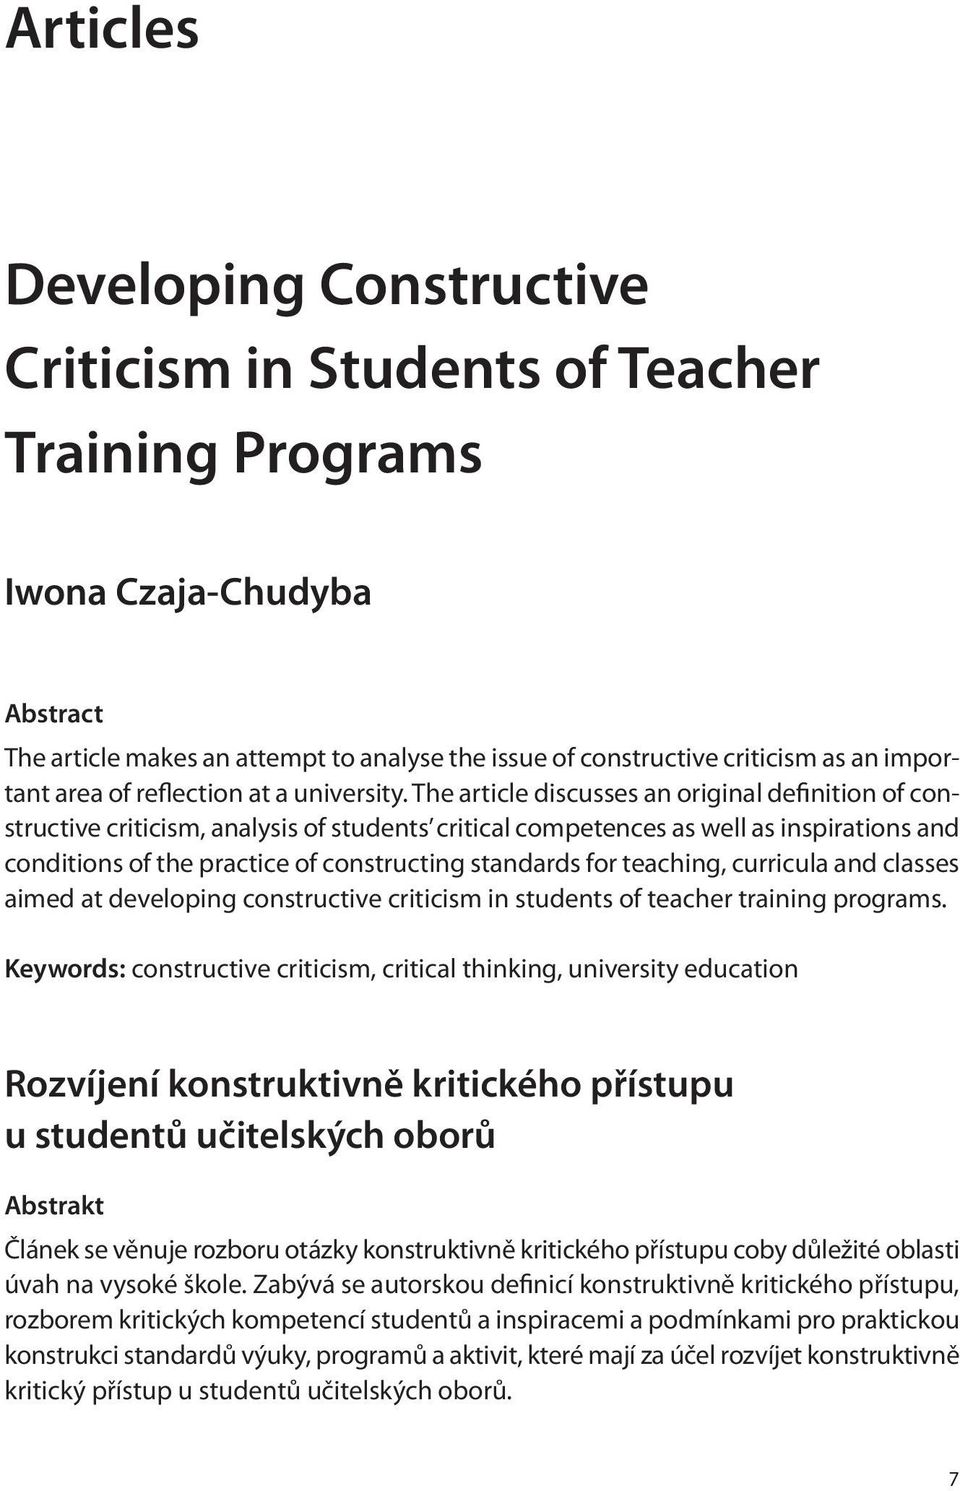 The article discusses an original definition of constructive criticism, analysis of students critical competences as well as inspirations and conditions of the practice of constructing standards for